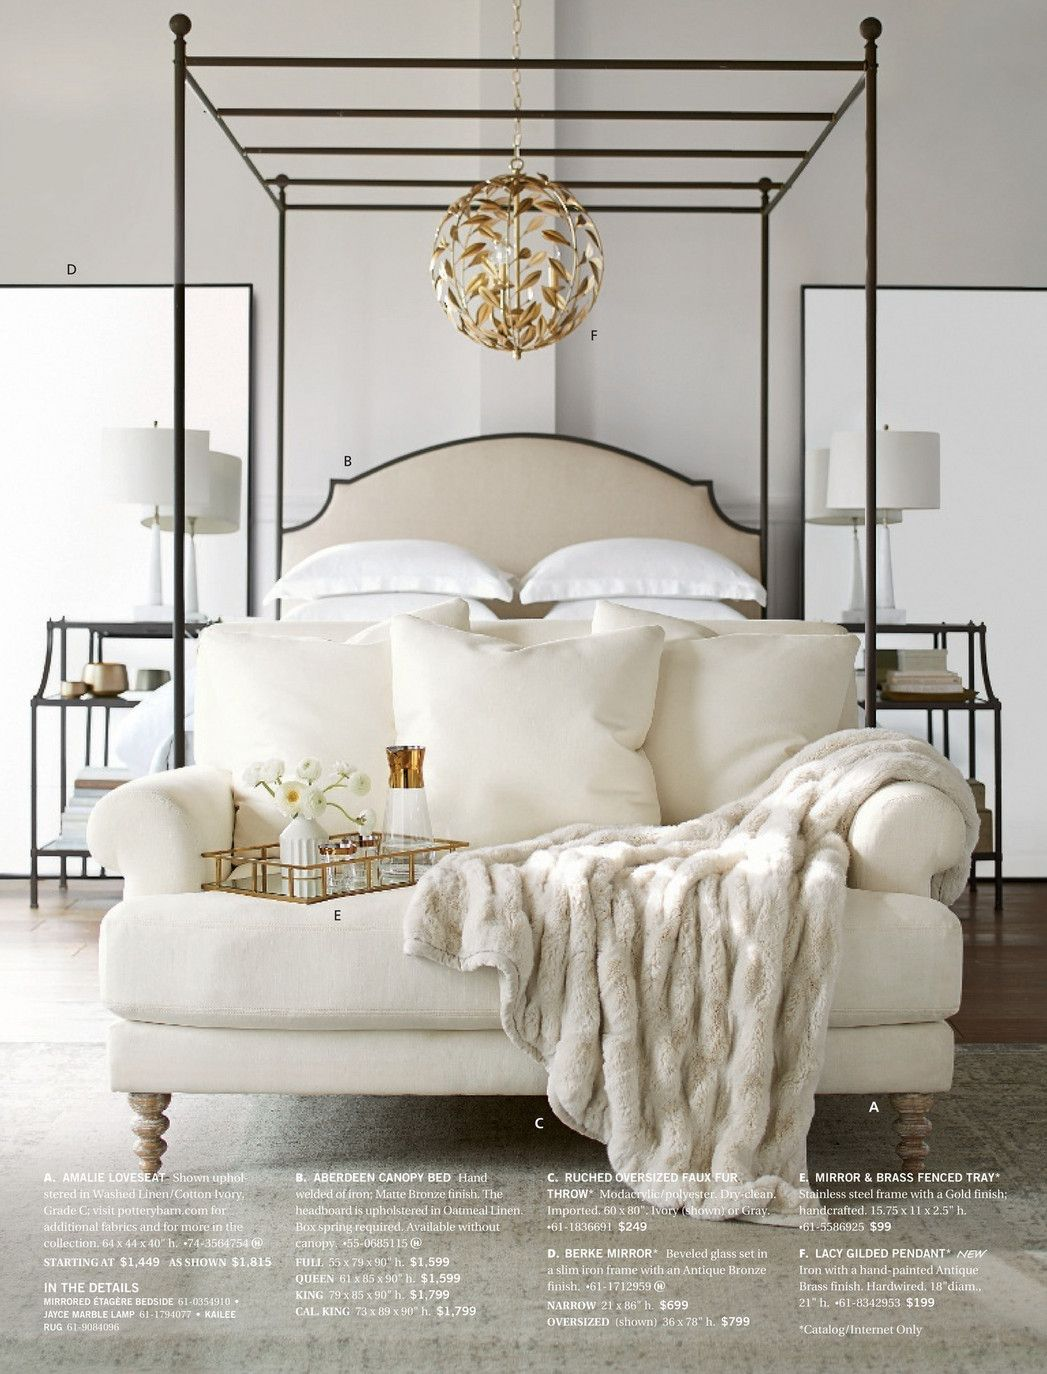 Summer makeover your bed ways to love your summer bed a